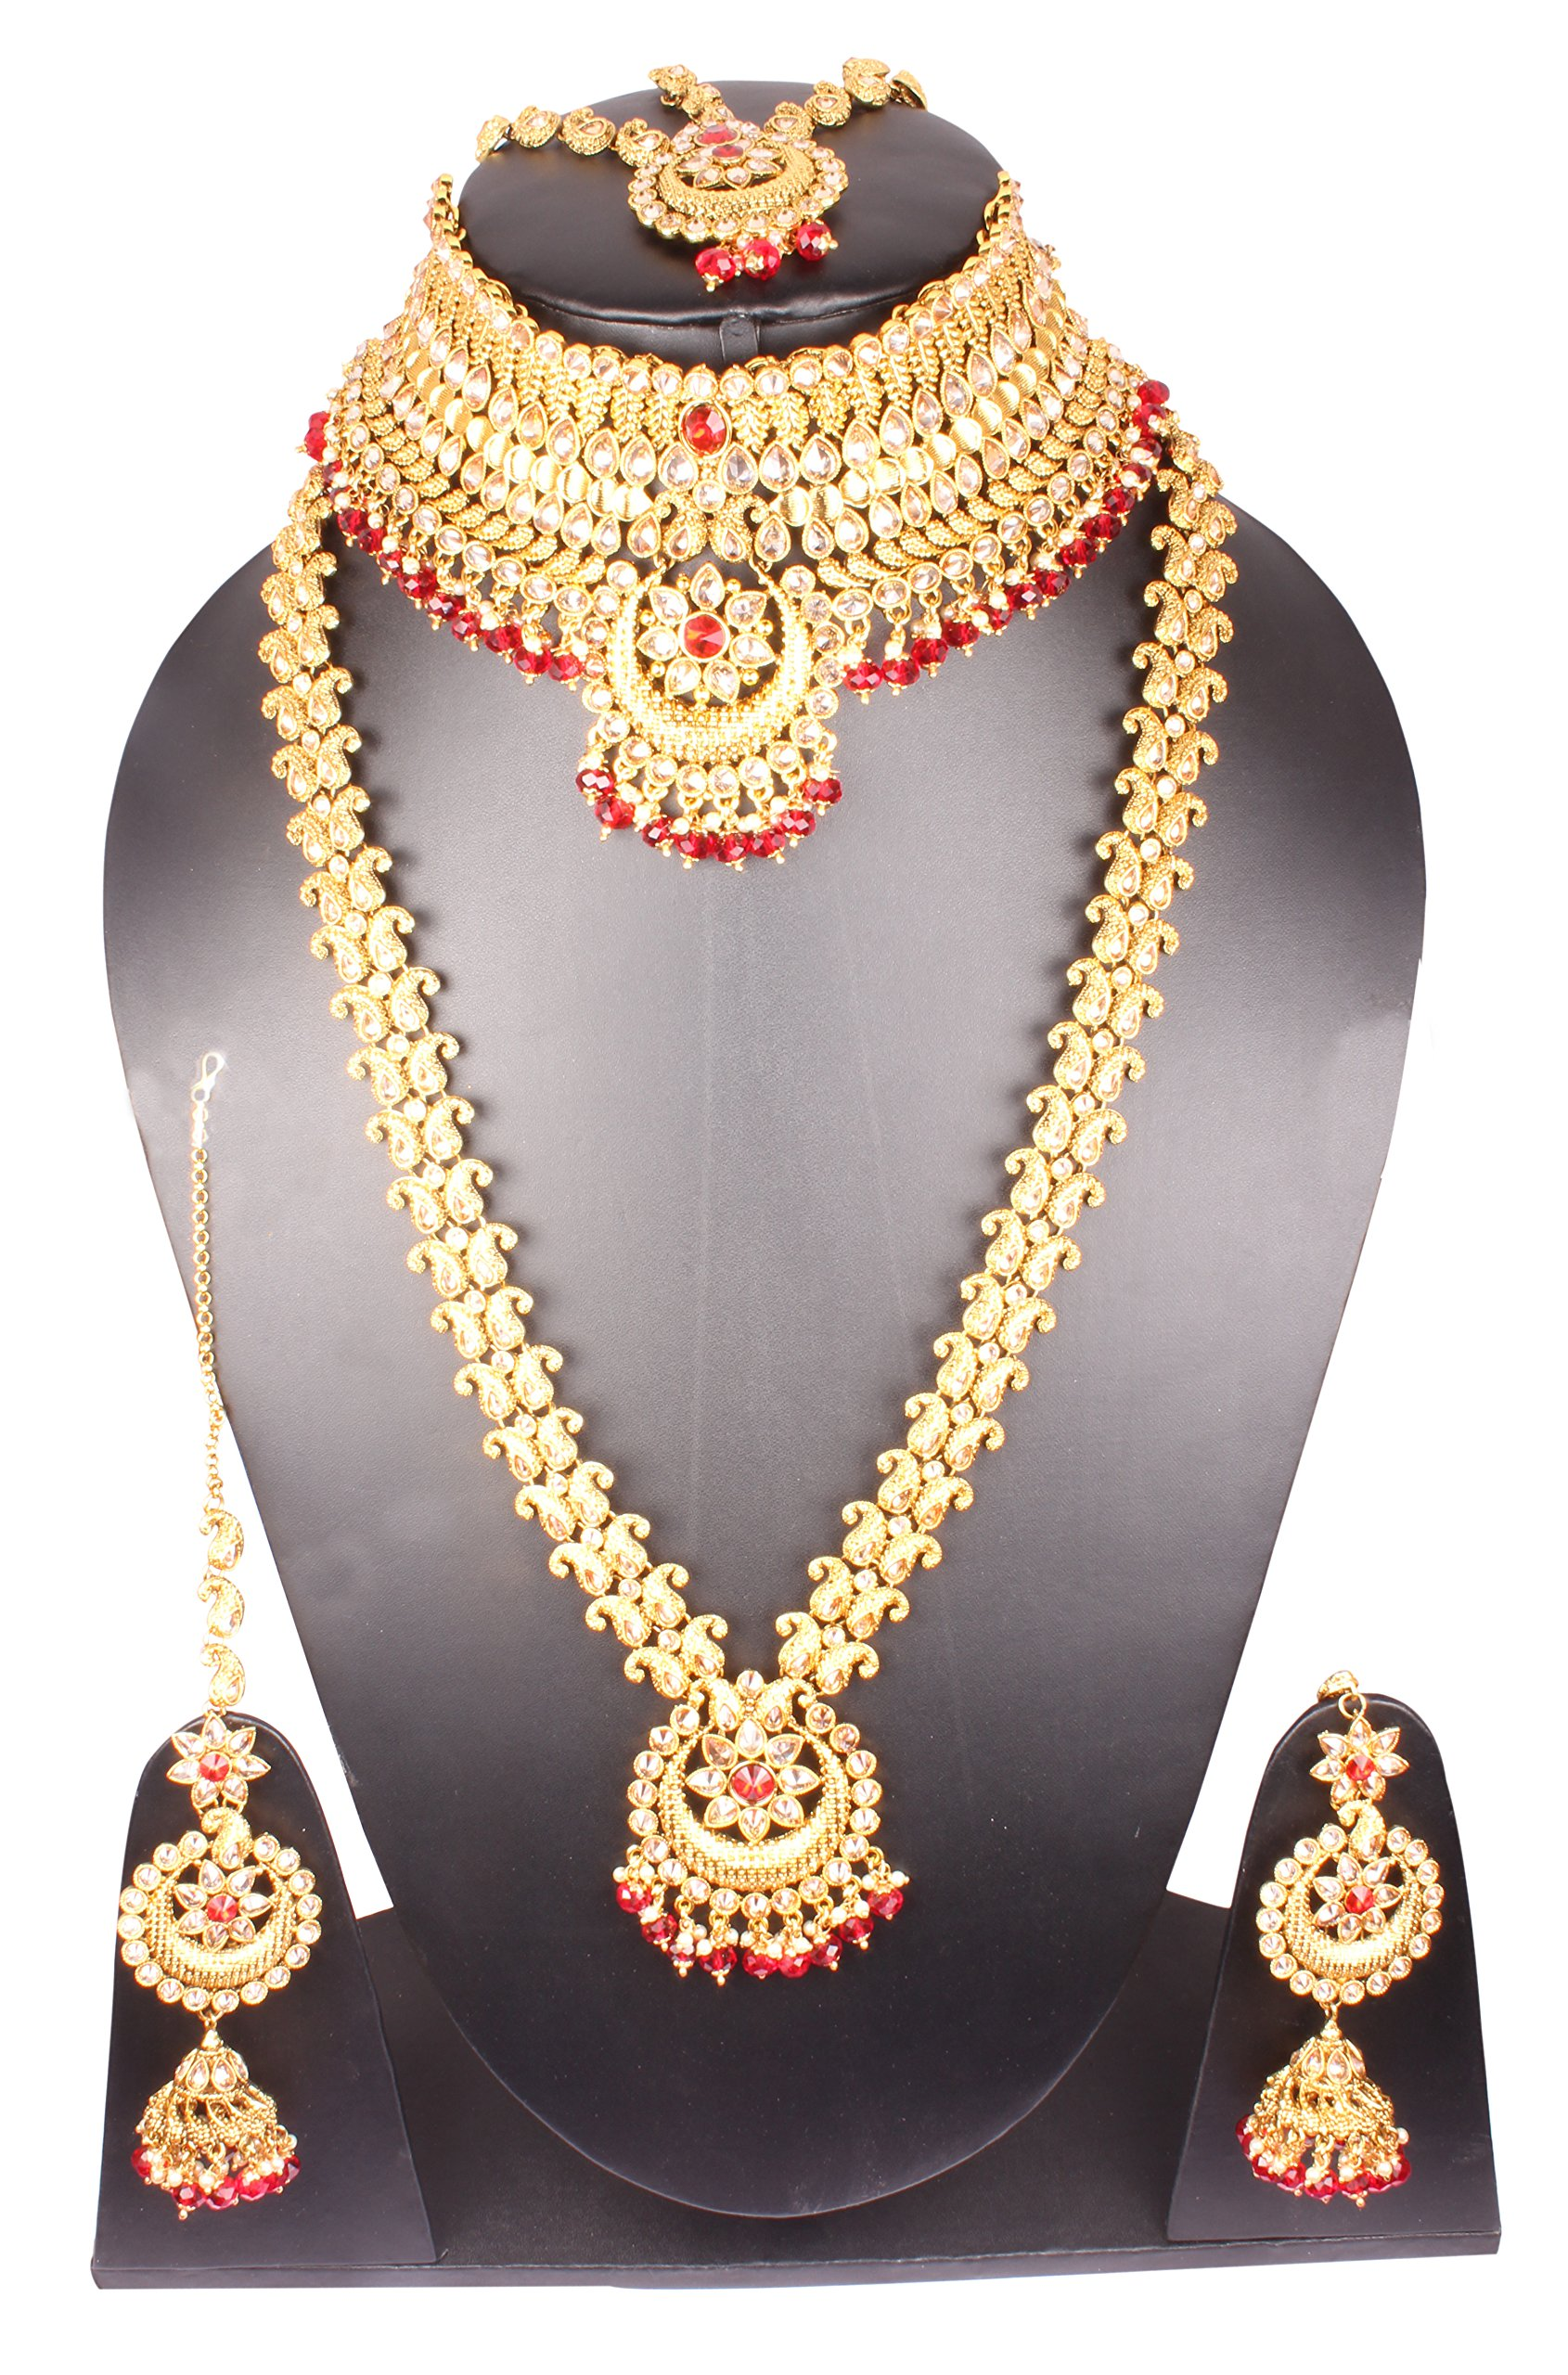 Shiv_Collection Traditional Bollywood Style Gold Plated Indian Necklace Earrings Bridal Set Jewelry